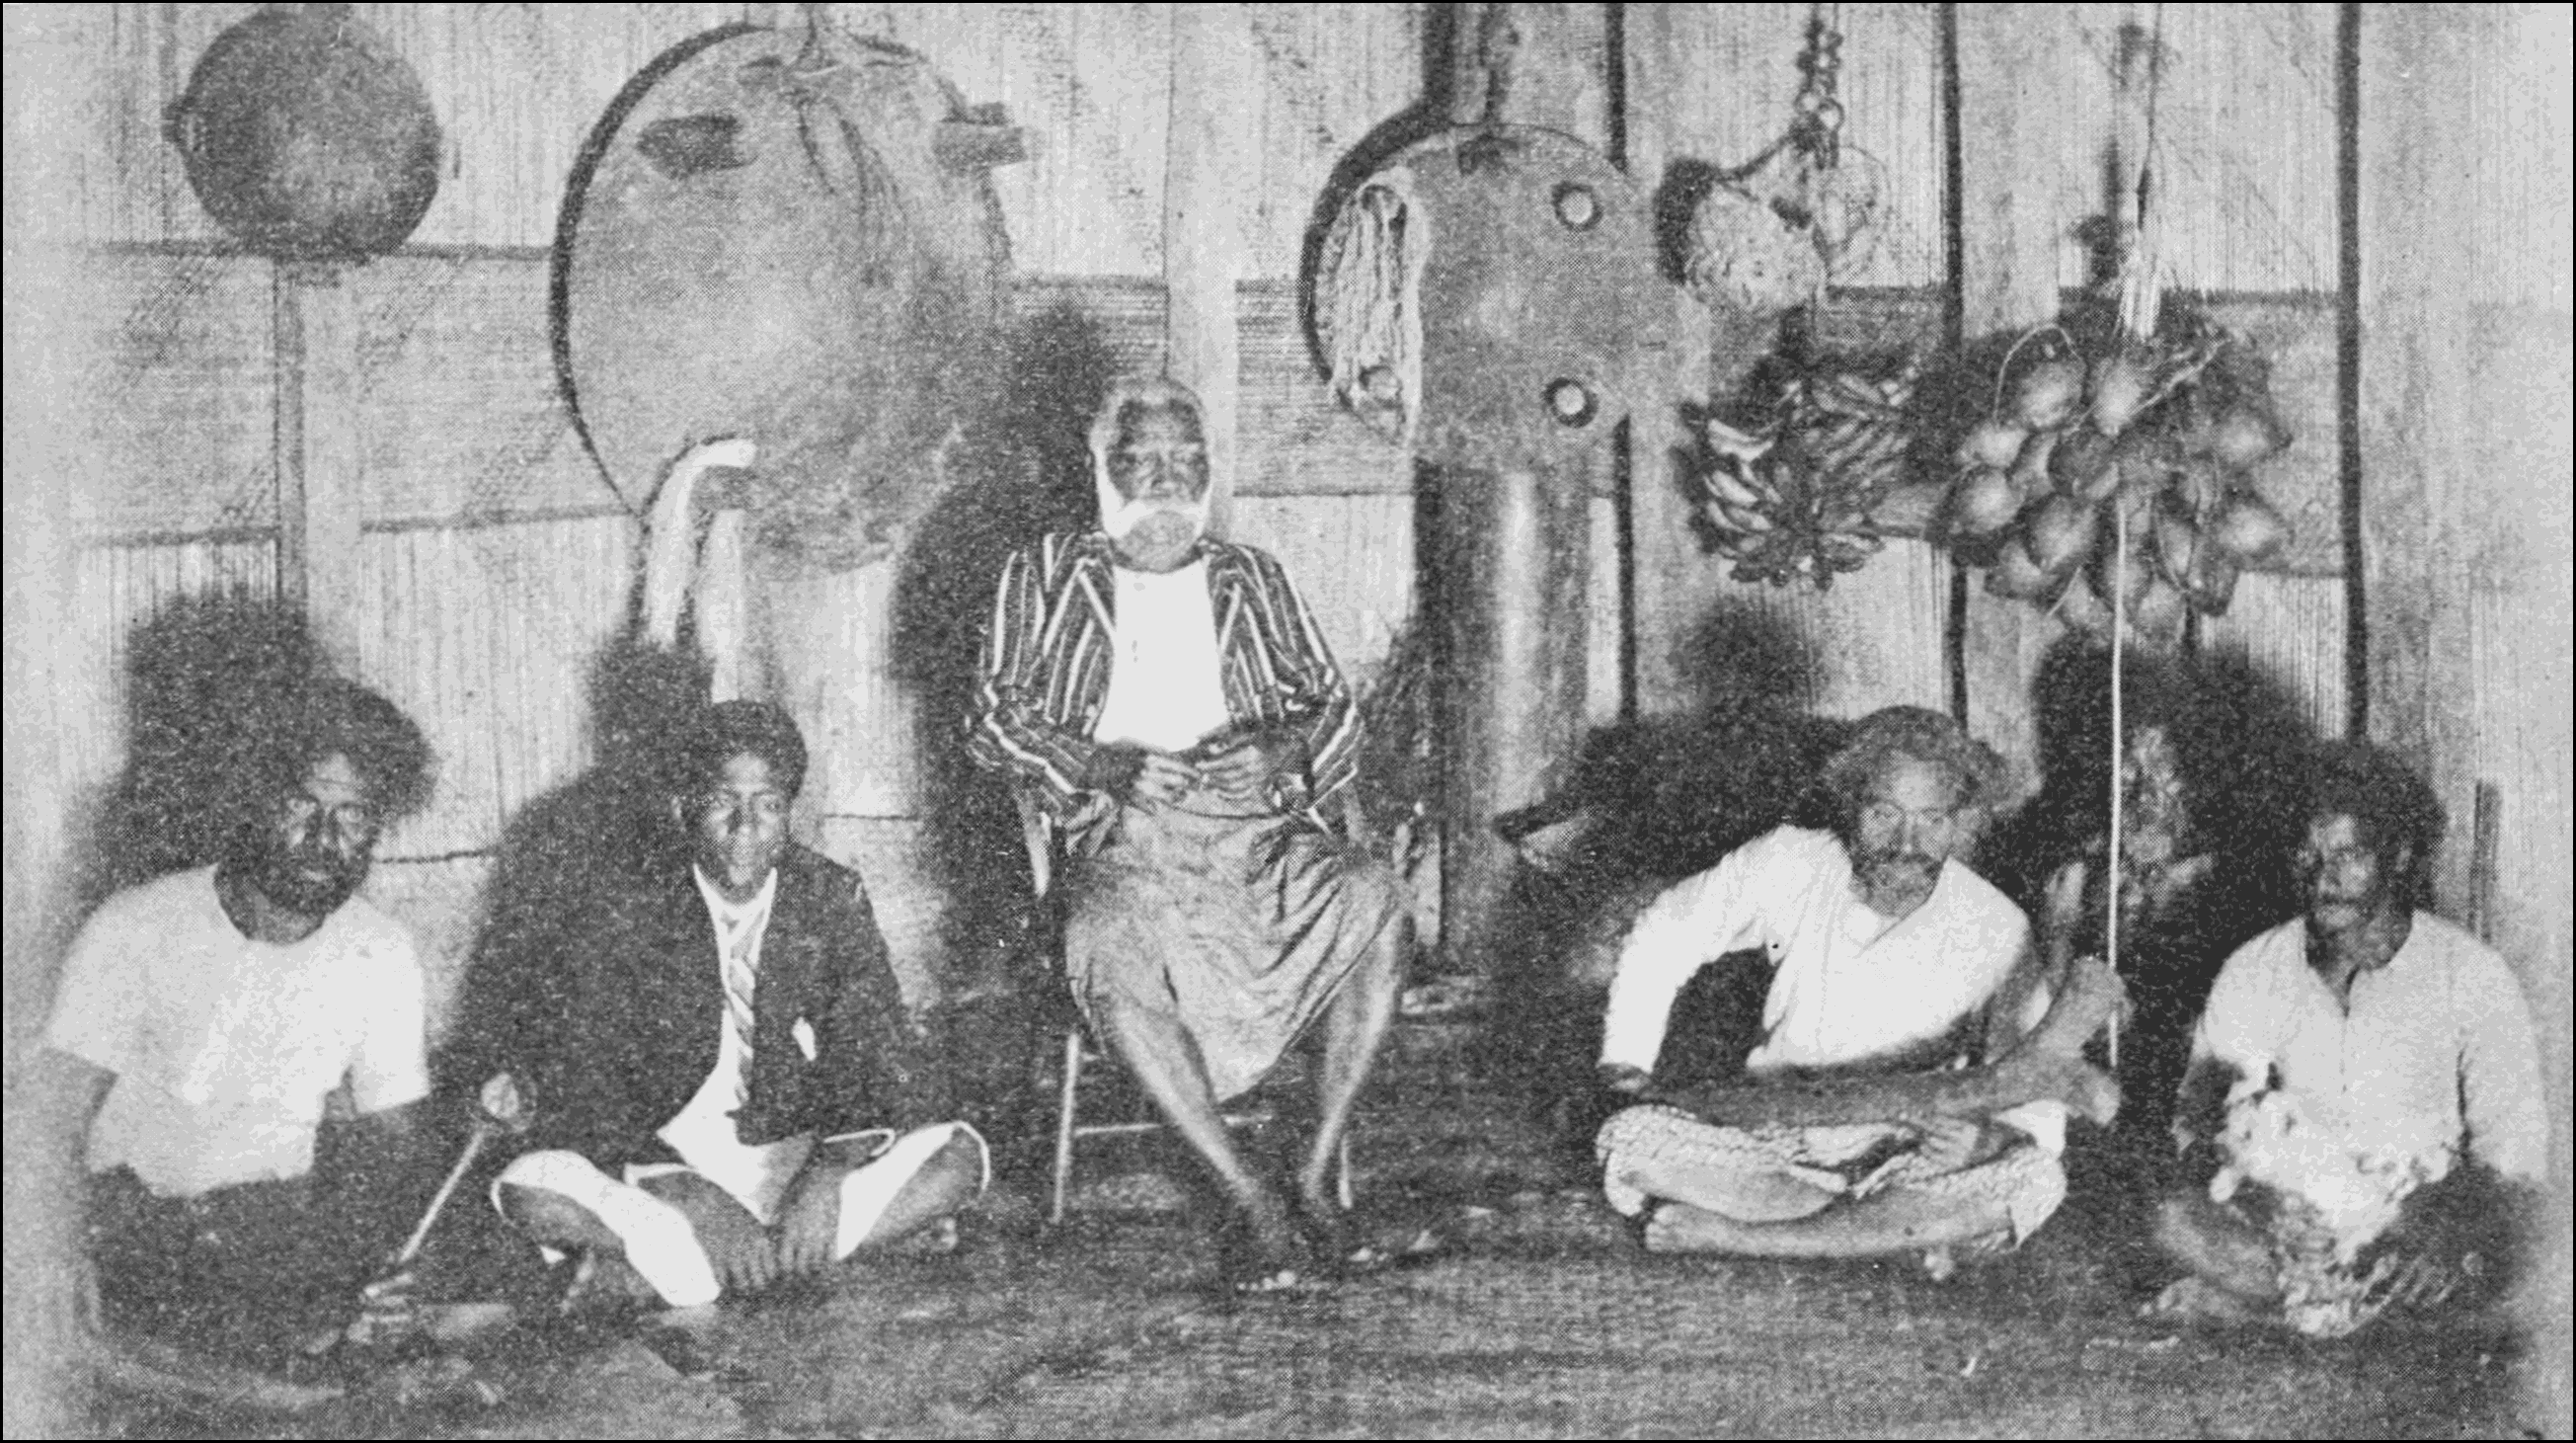 history of the chiefs in fiji In fiji, kava's cultural significance is deeply rooted in the history of the location for example, although it is usually used today in social gatherings as a form of recreation and convention, traditionally, the drink was only serve to higher-ranking chiefs and elders of the tribes in order to signify the welcoming of honored guests.